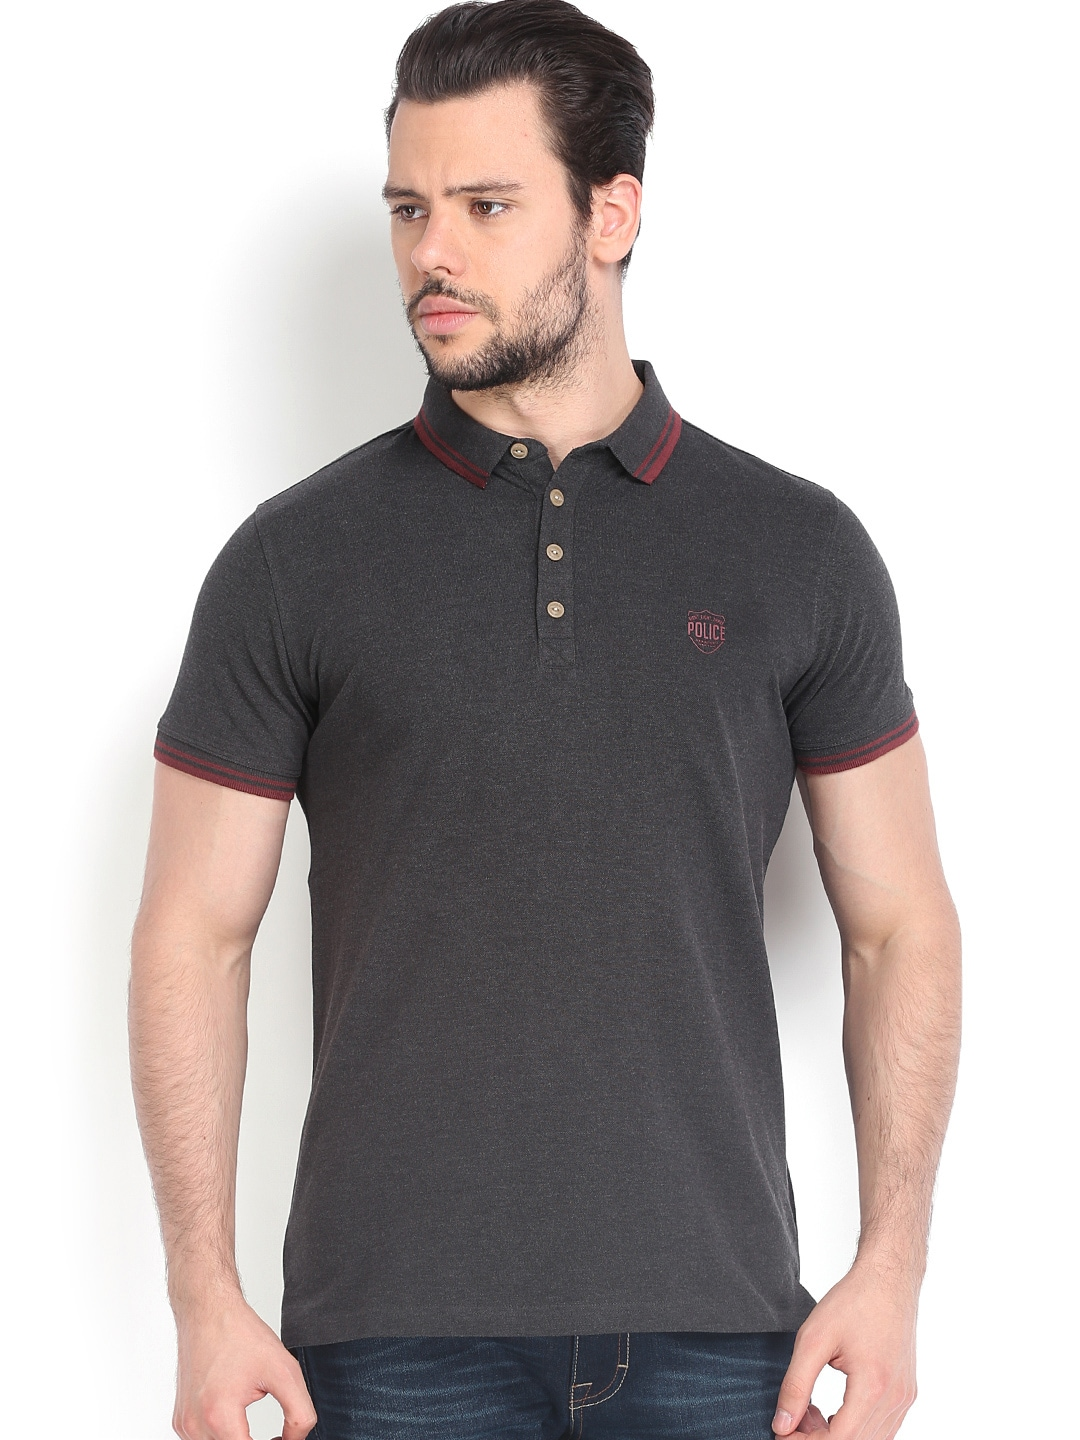 Police 883 Police Men Charcoal Grey Polo T-Shirt (Multicolor)